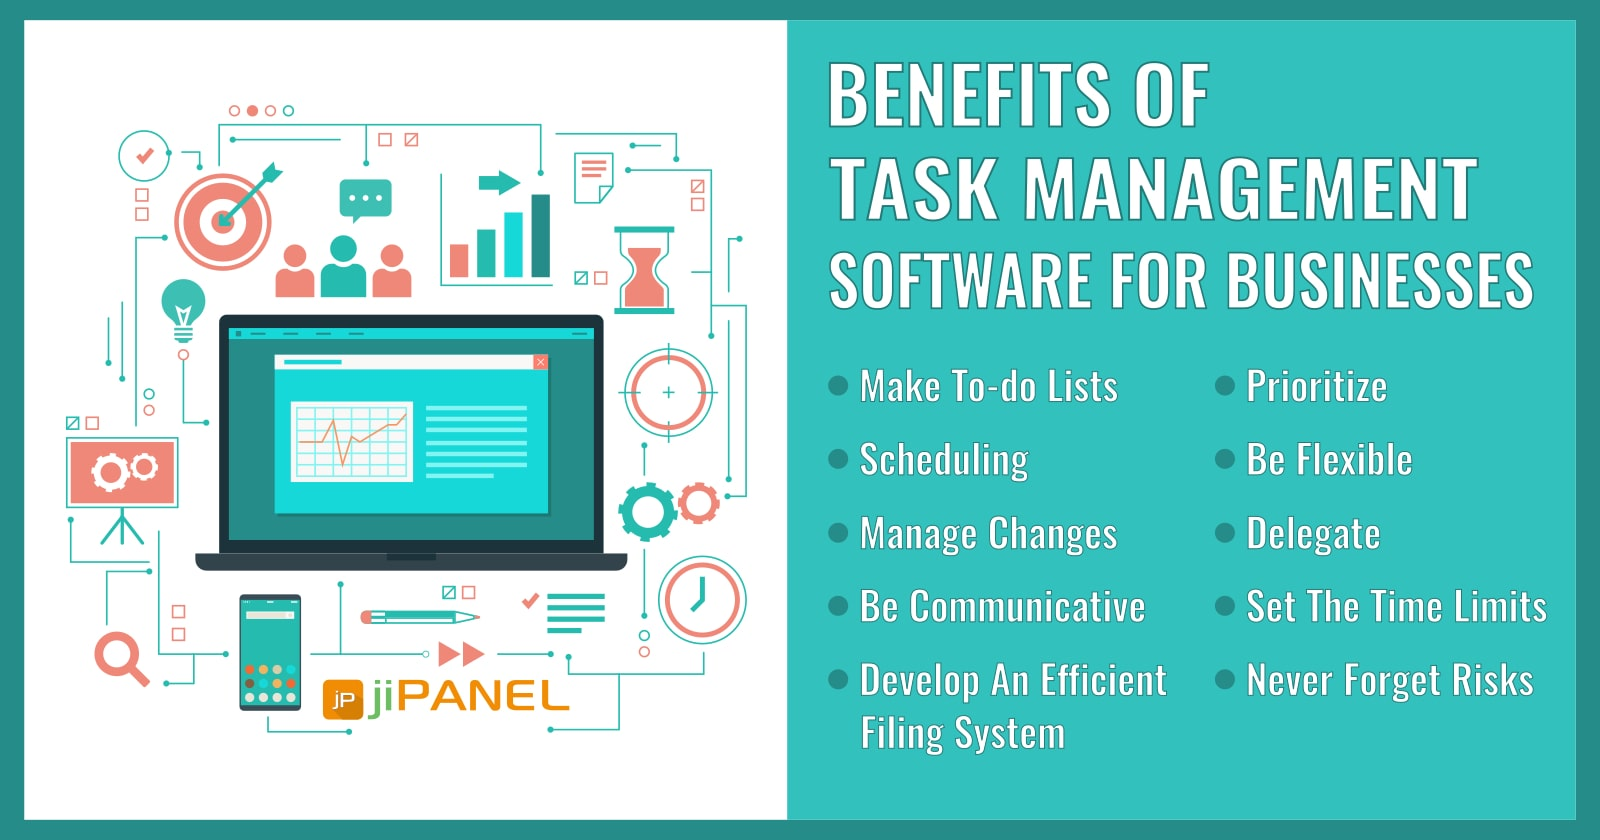 Benefits of Task Management Software For Businesses